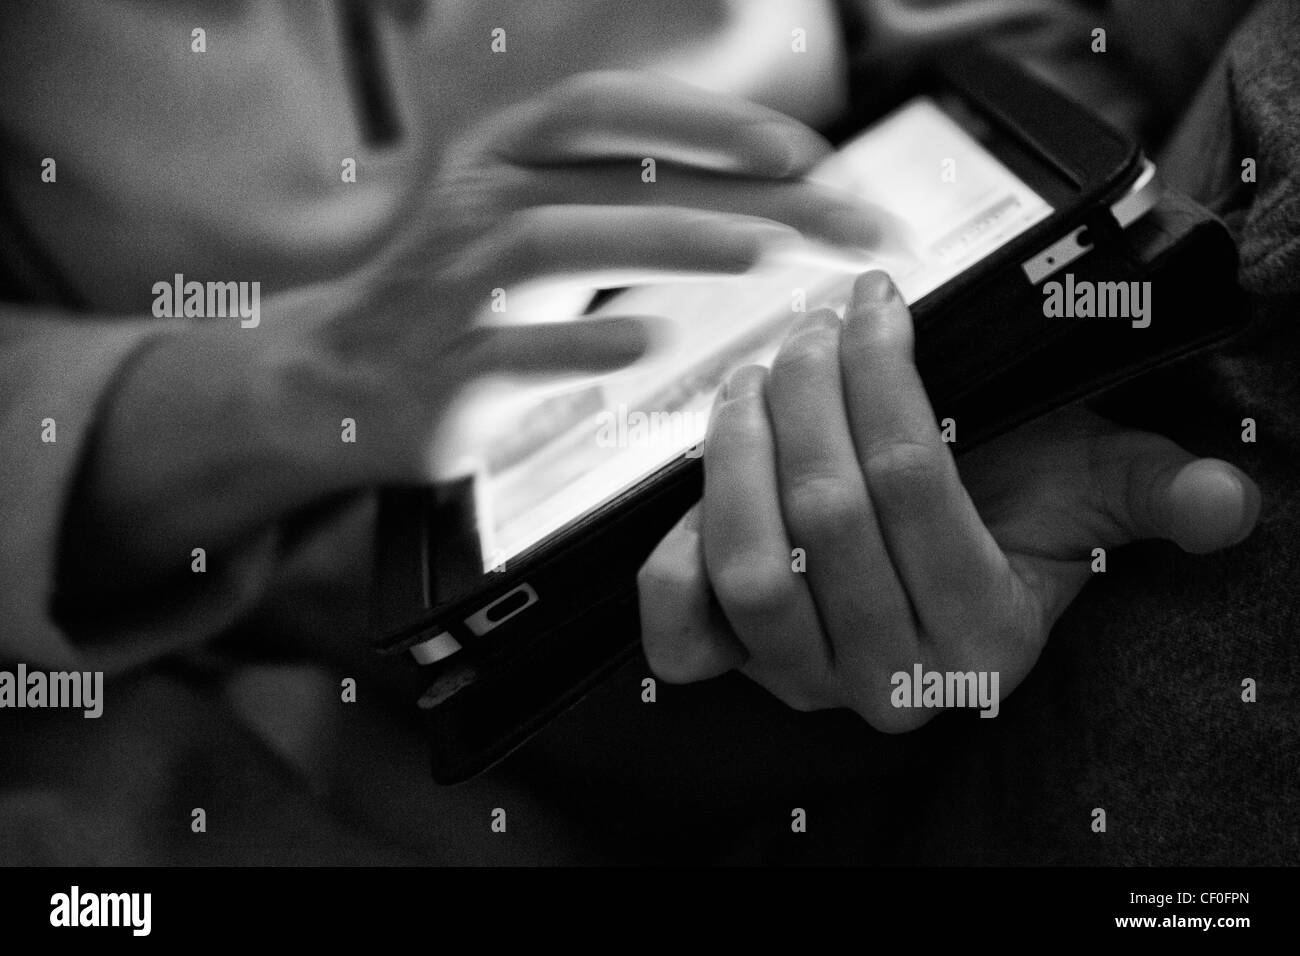 Woman holding Ipad in classic black and white - Stock Image